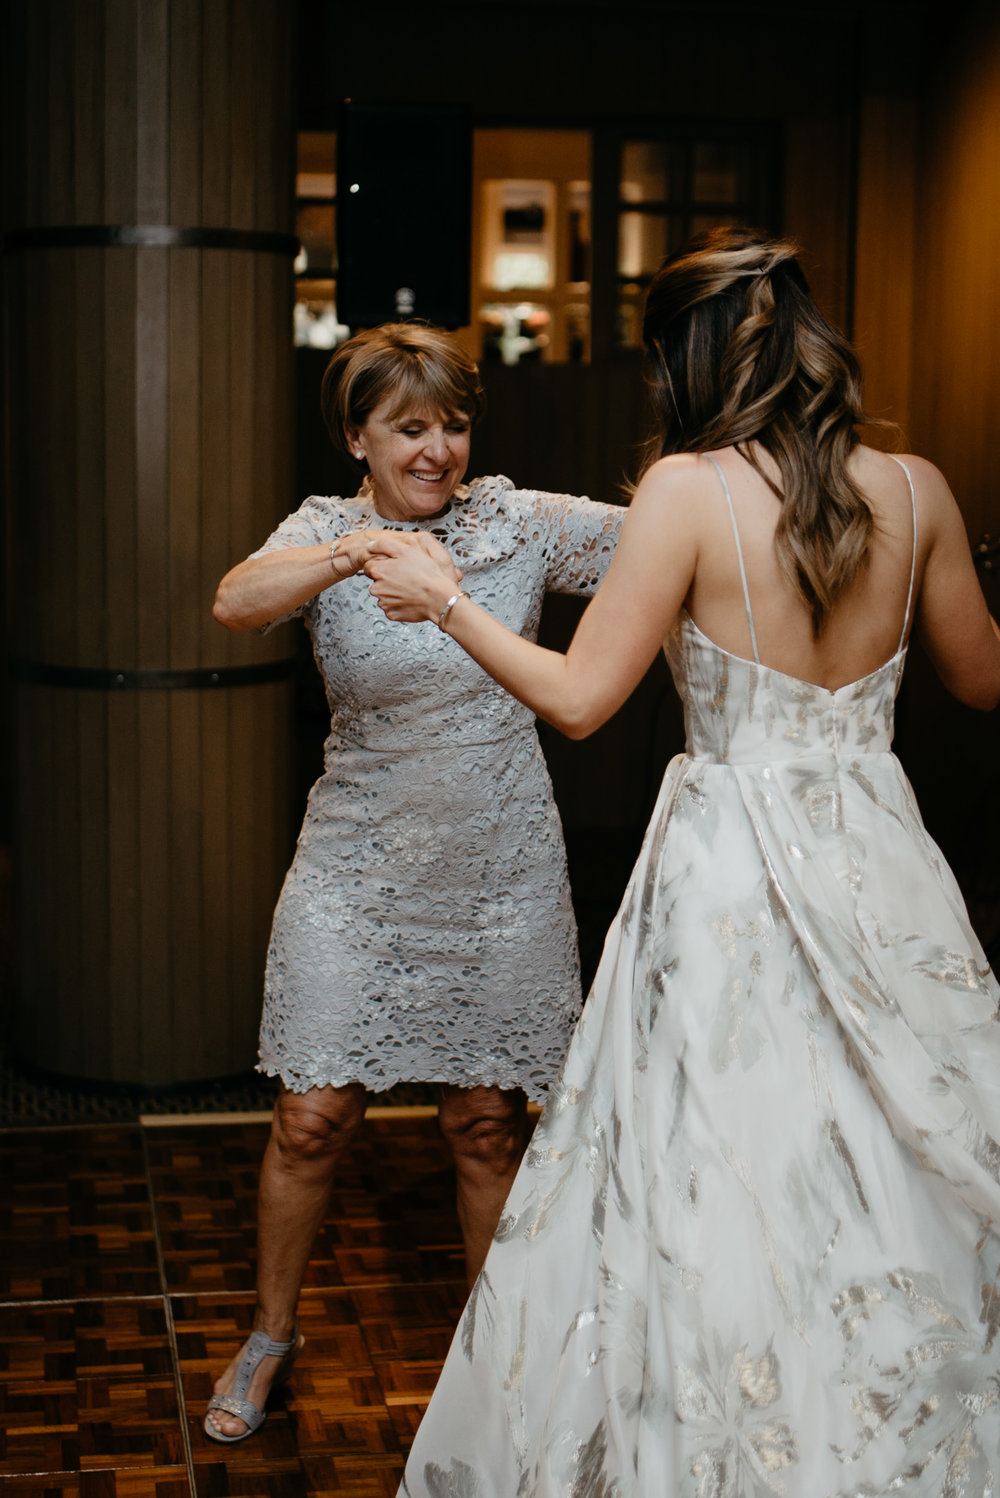 Mom and daughter dancing at The Little Nell taken by an Aspen, Colorado wedding and elopement photographer.